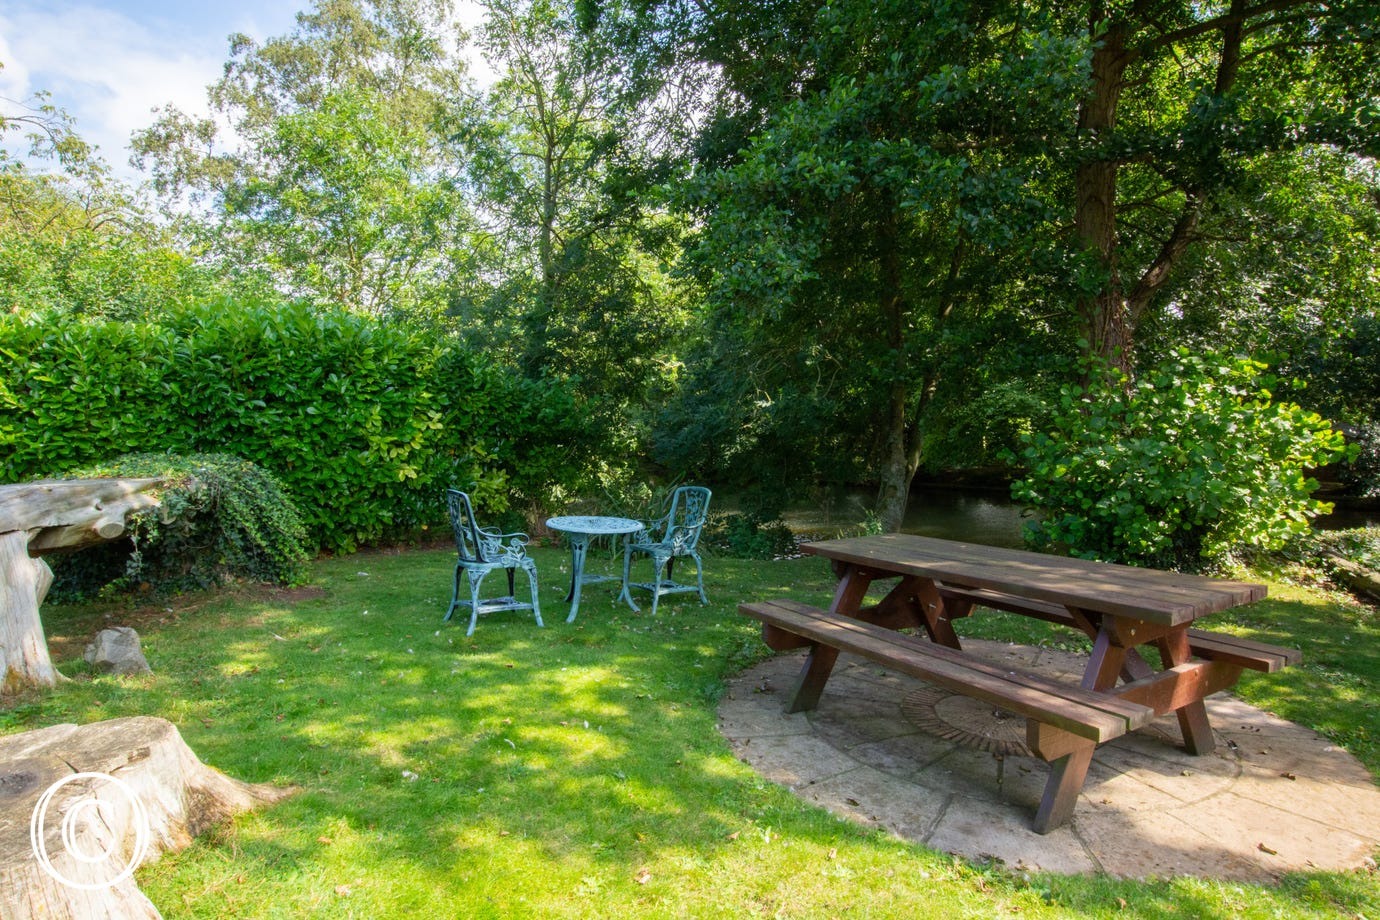 Patio with picnic table in pretty wooded area.